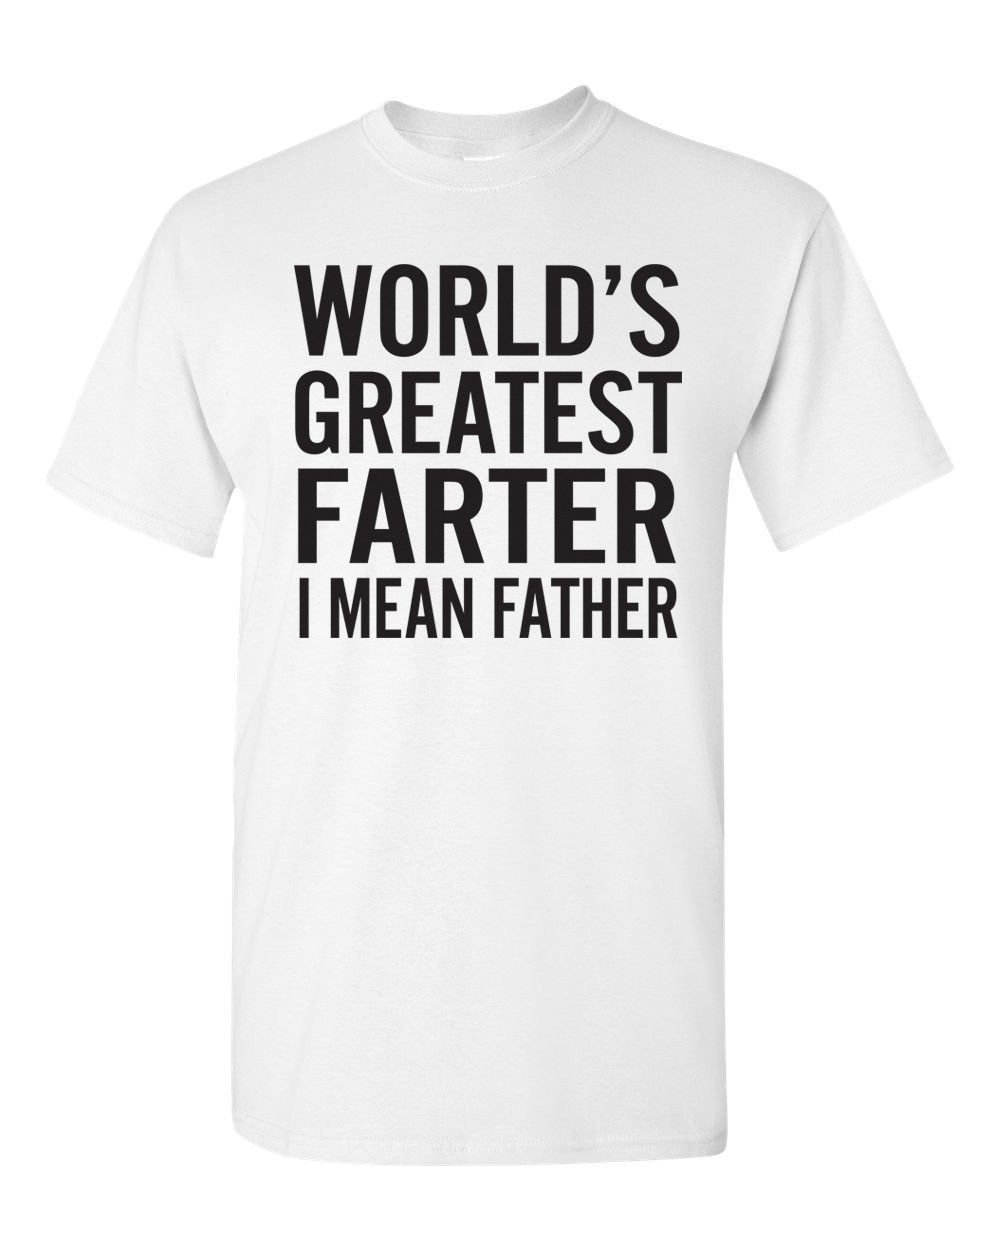 World's Greatest Farter I Mean Father. Gift for Dad. Dads Shirt. Worlds Greatest Dad. Grandpa. Farter Of The Year. Dad. Father's Day Gift.